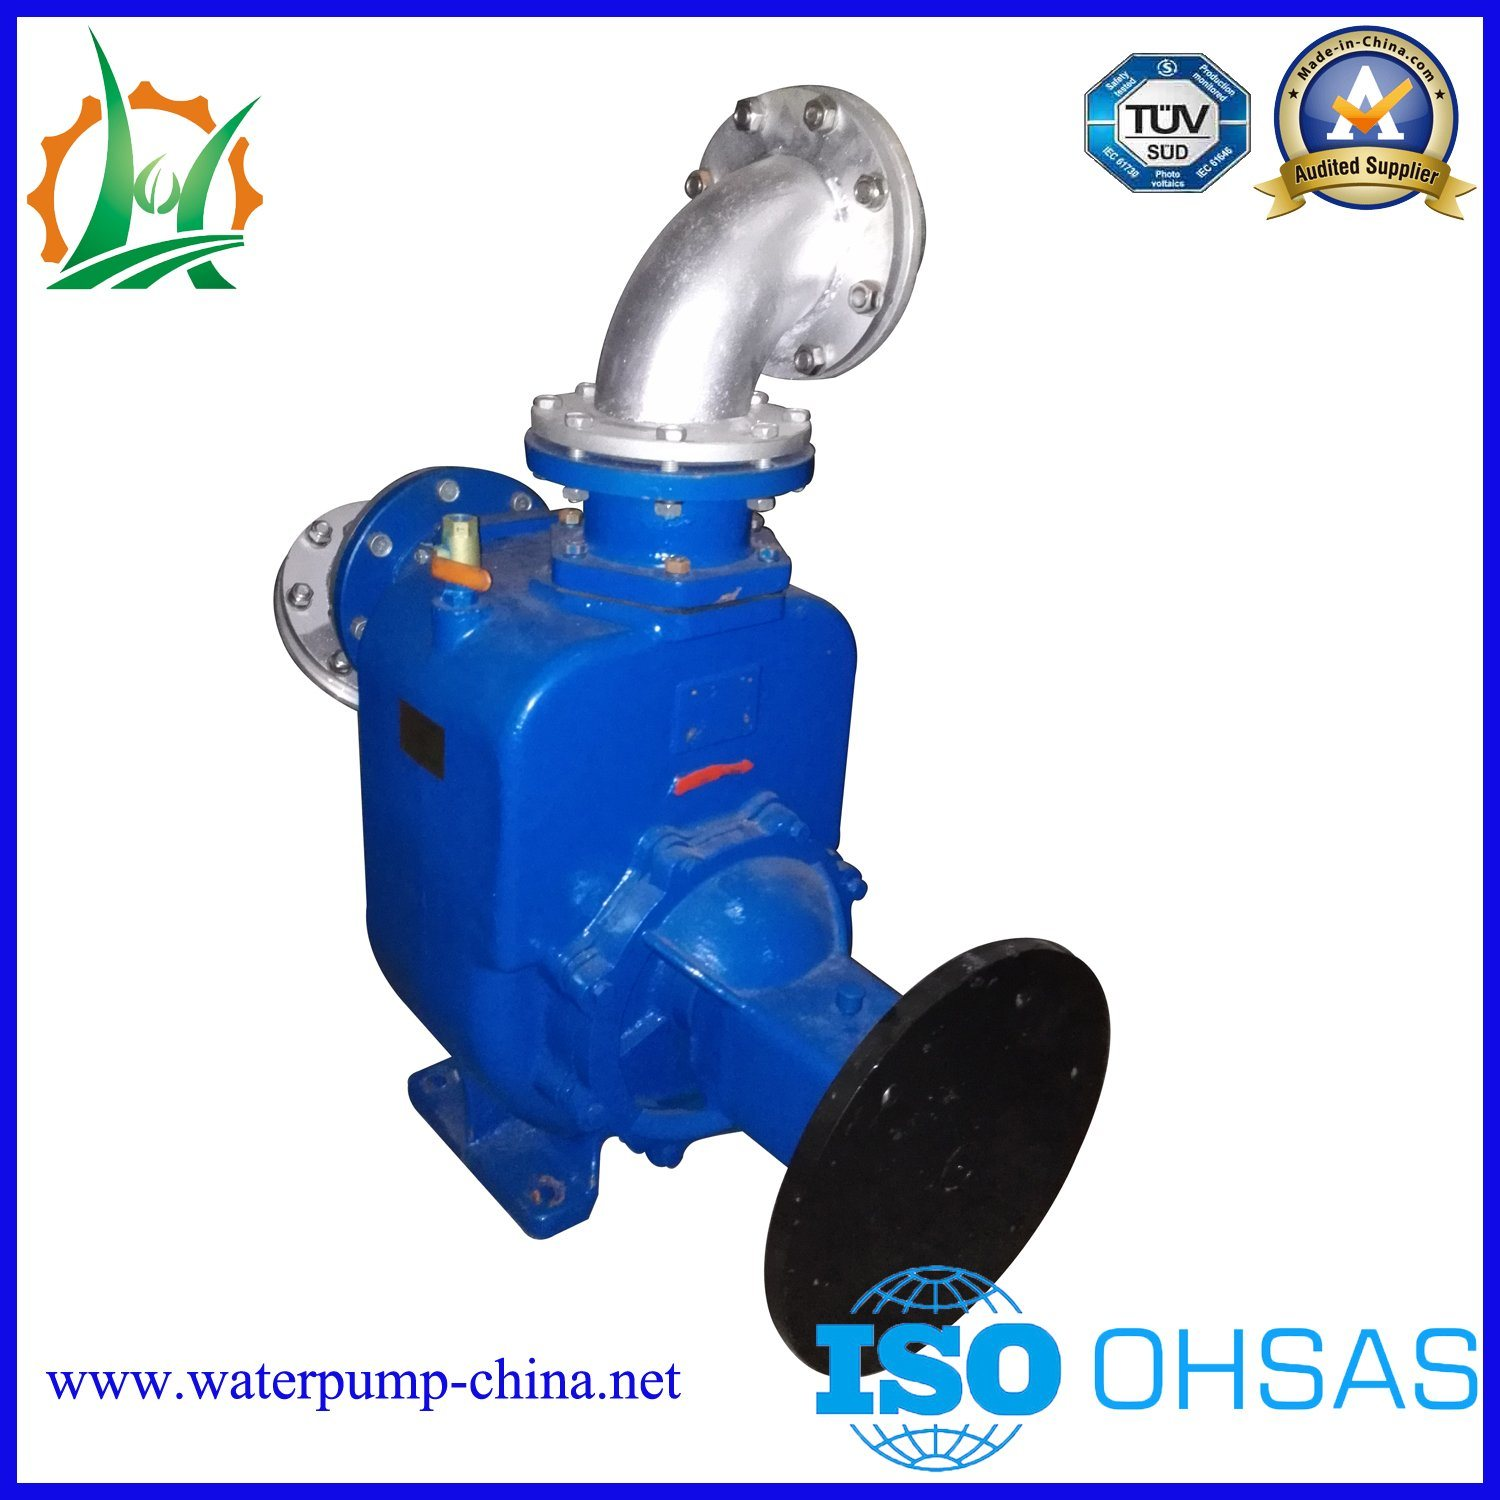 Pumps for water supply and sewage 73